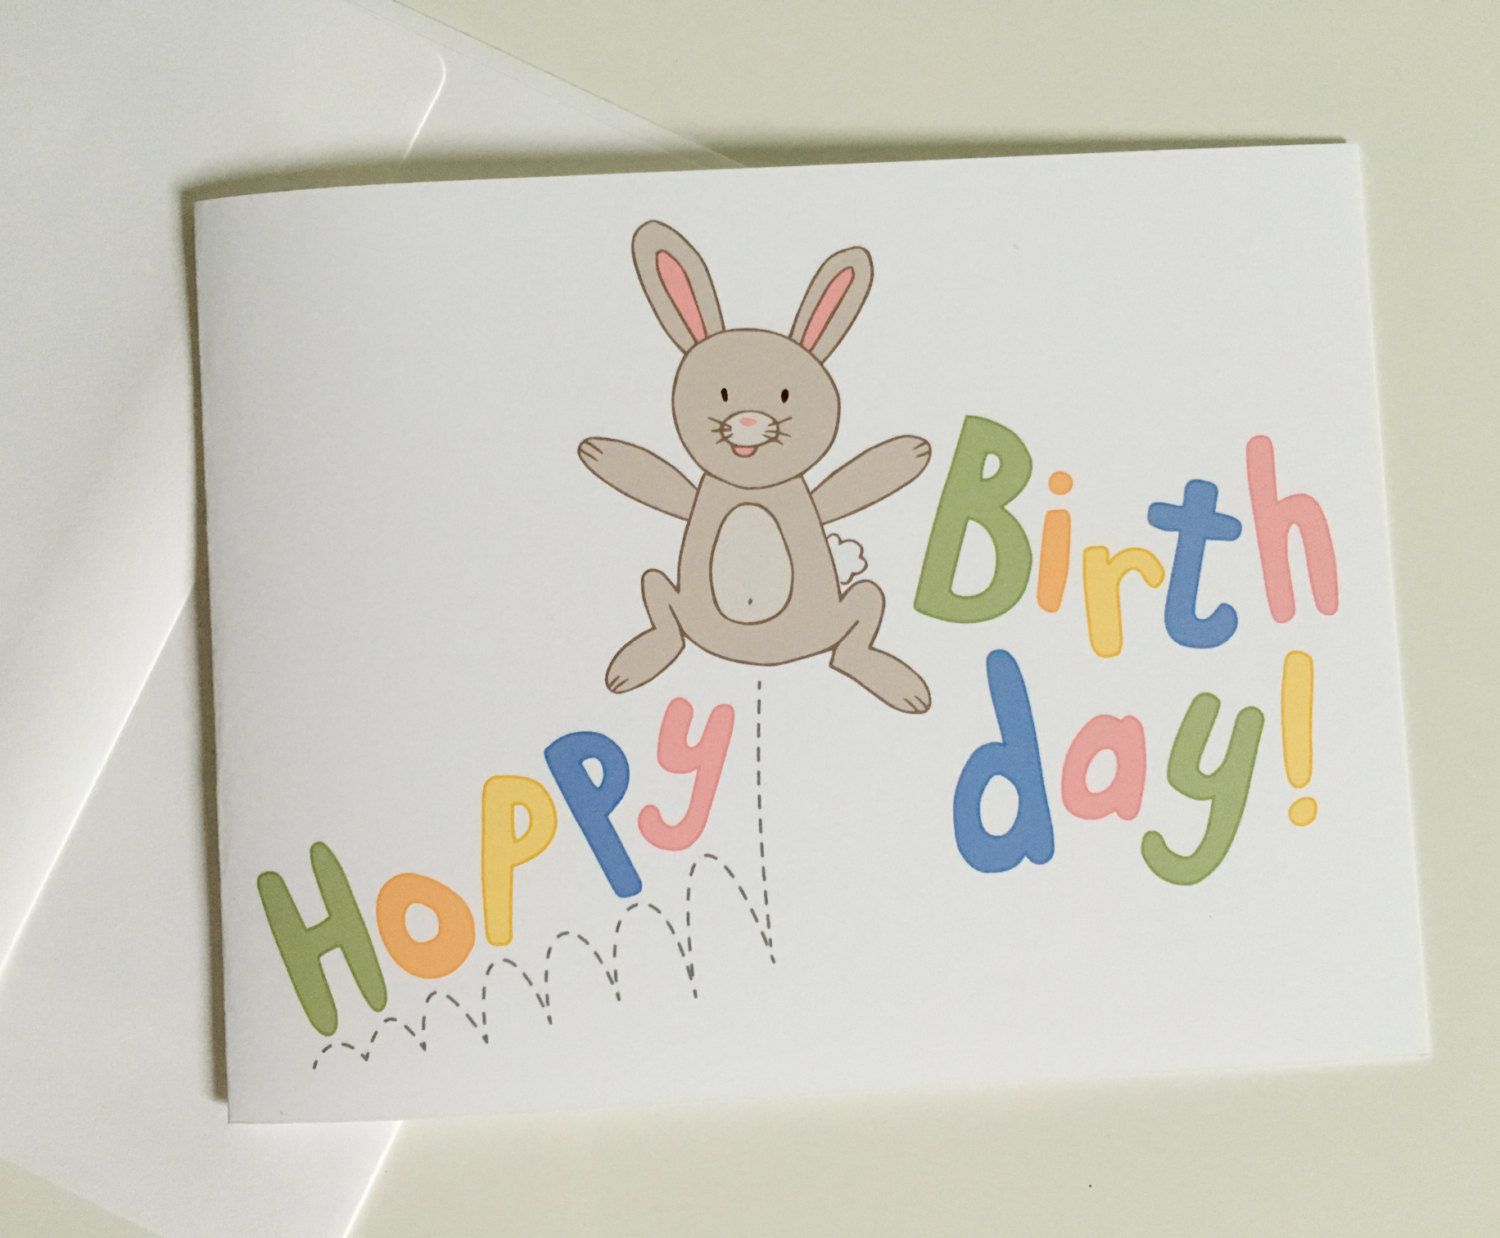 Birthday card hoppy birthday bunny greeting card funny birthday birthday card hoppy birthday bunny greeting card funny birthday card kids birthday card birthday greeting card cute birthday card bookmarktalkfo Image collections